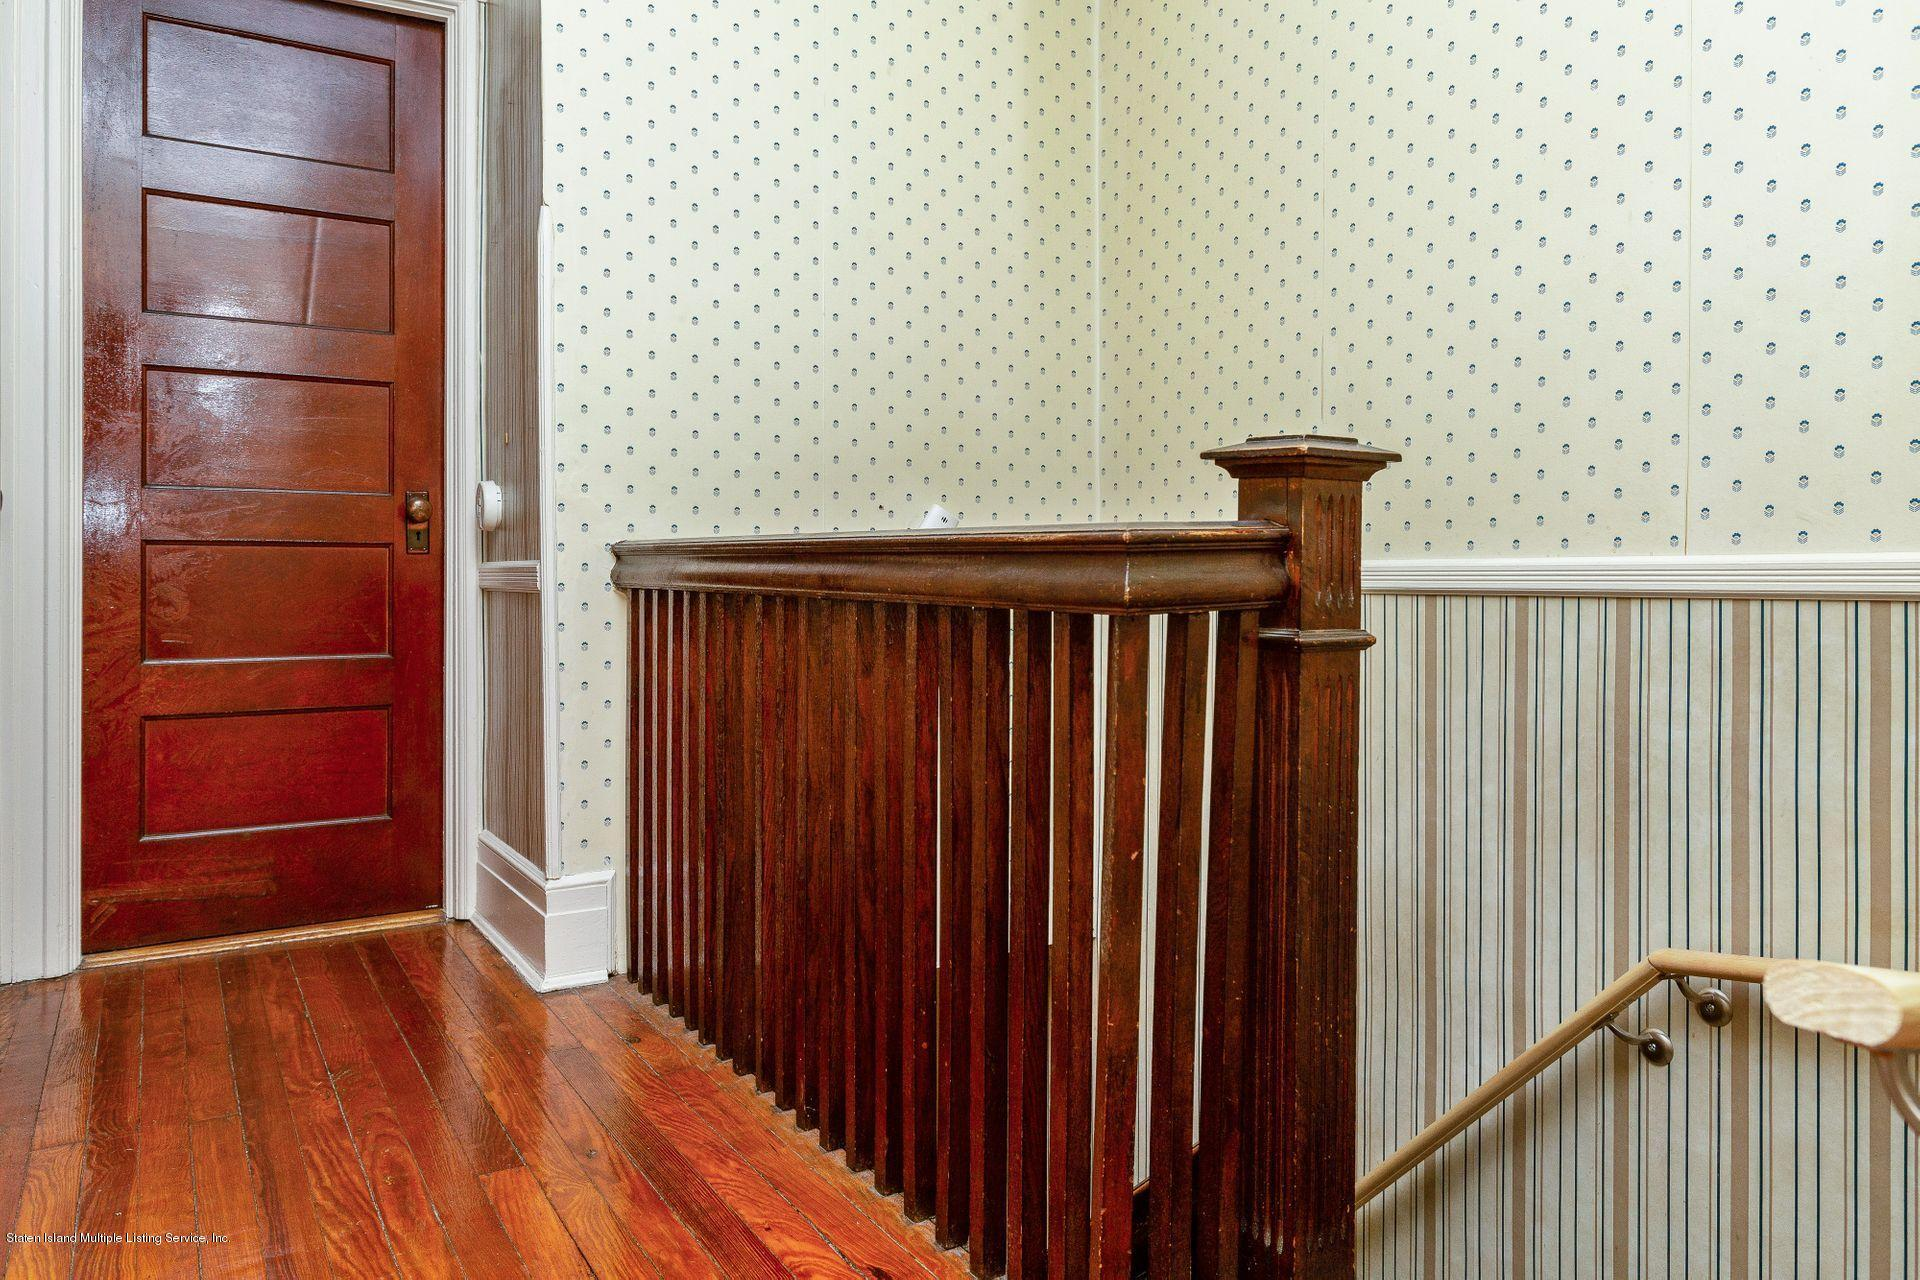 Single Family - Attached 83 Chester Avenue  Brooklyn, NY 11218, MLS-1134106-15